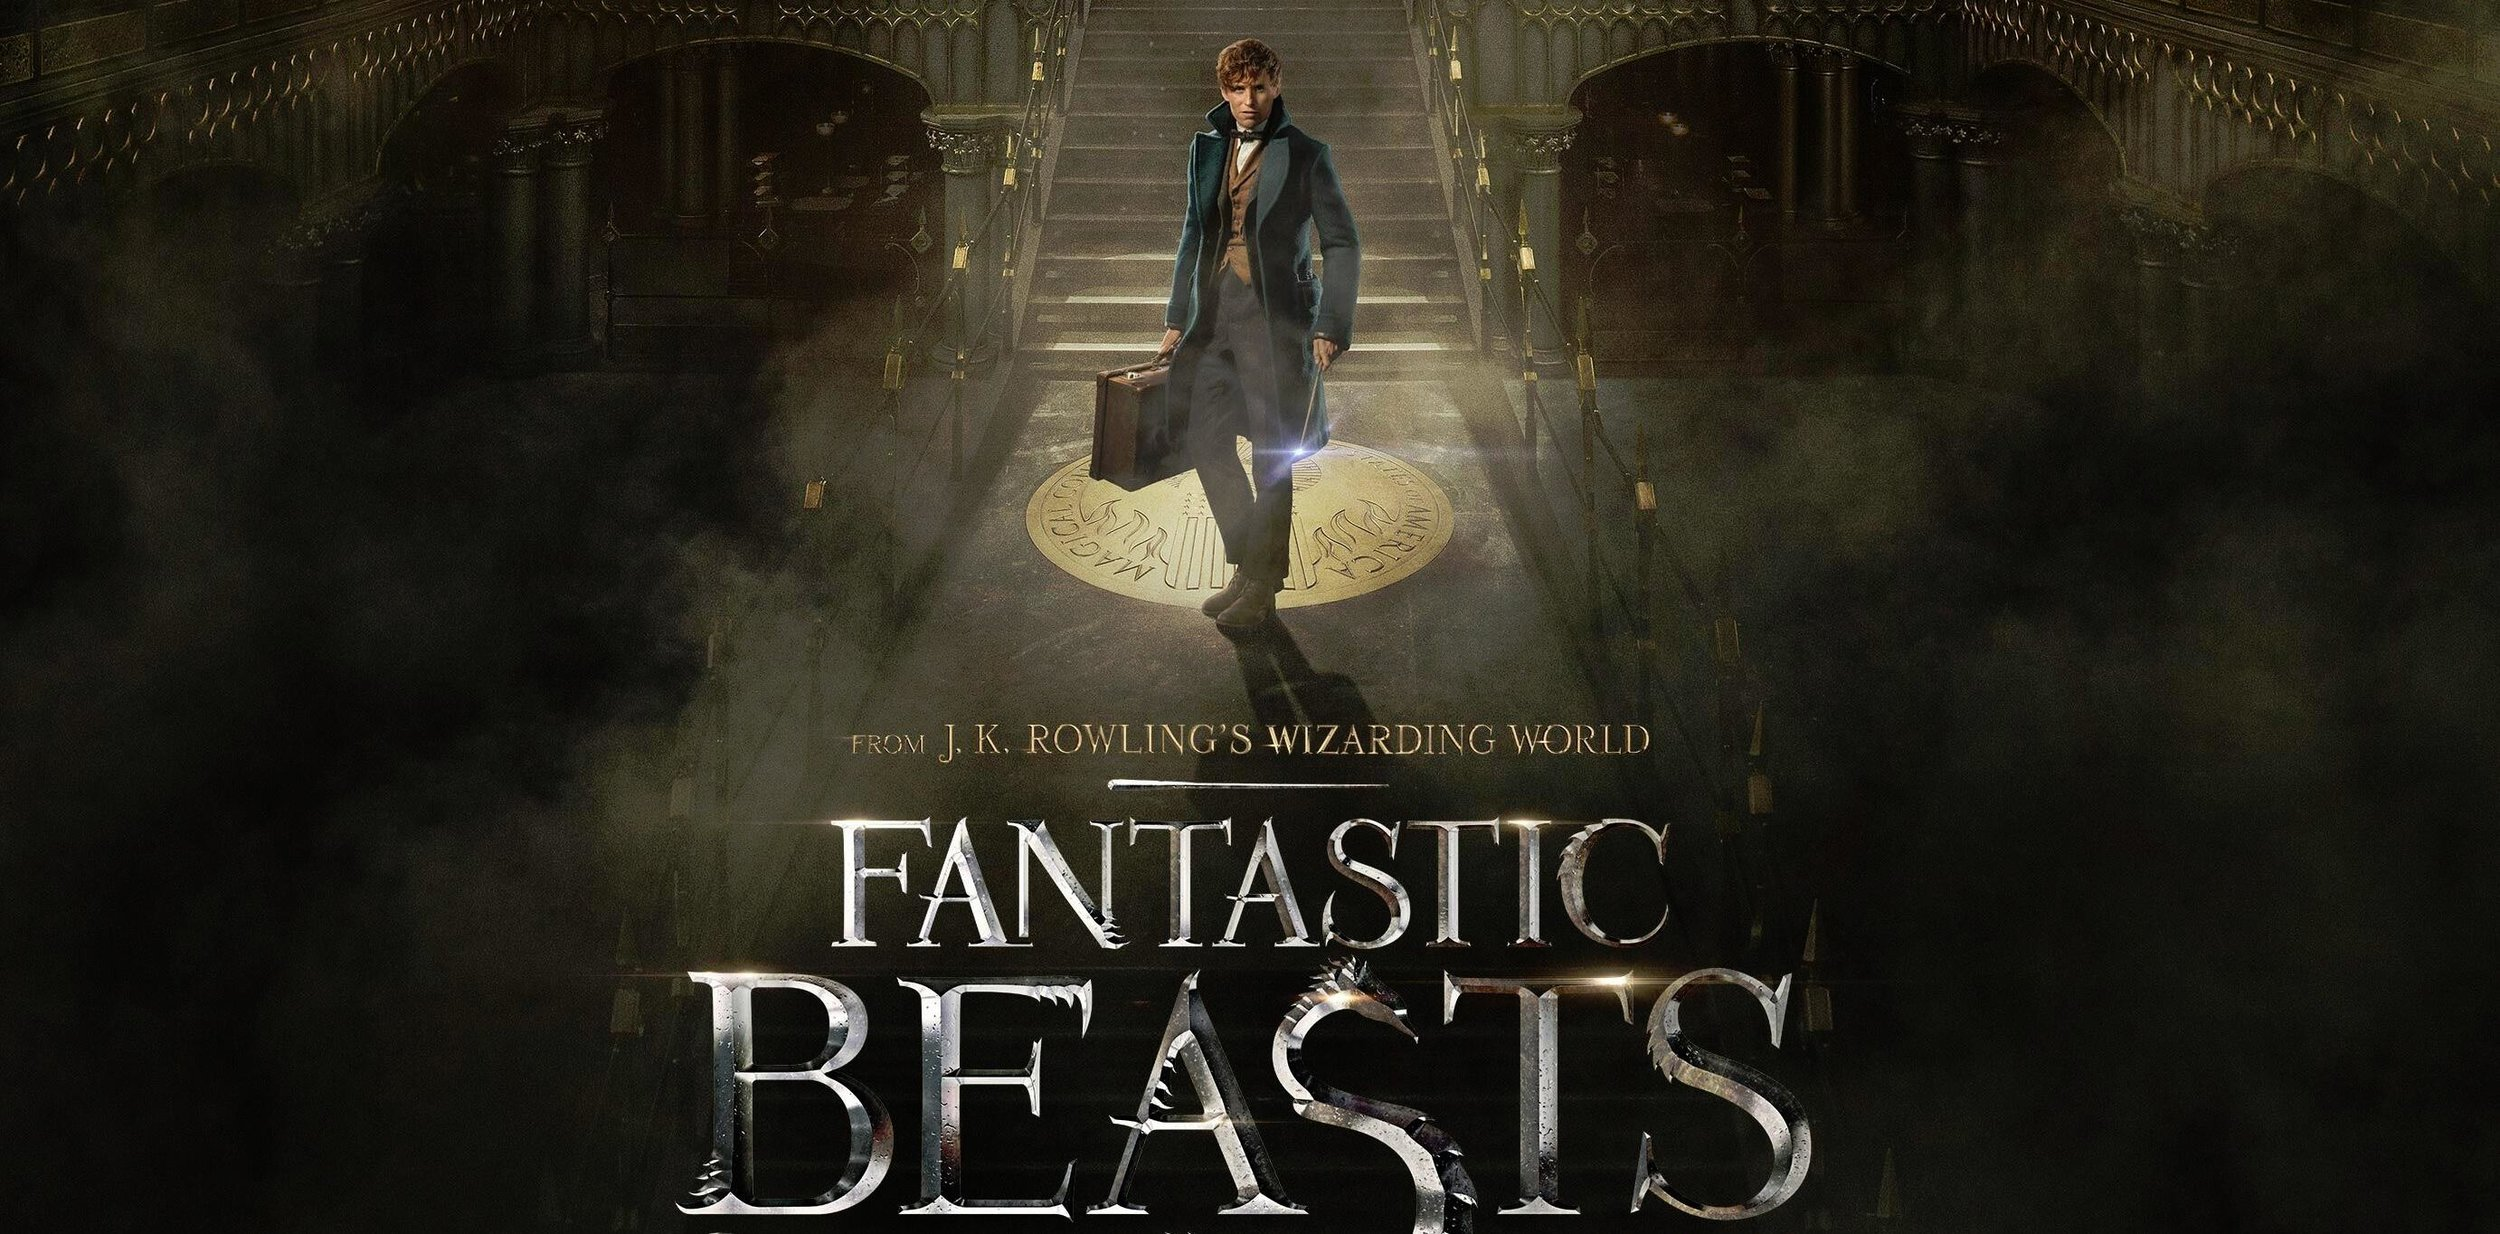 Fantastic-Beasts-and-Where-to-Find-Them-HD-Wallpaper.jpg